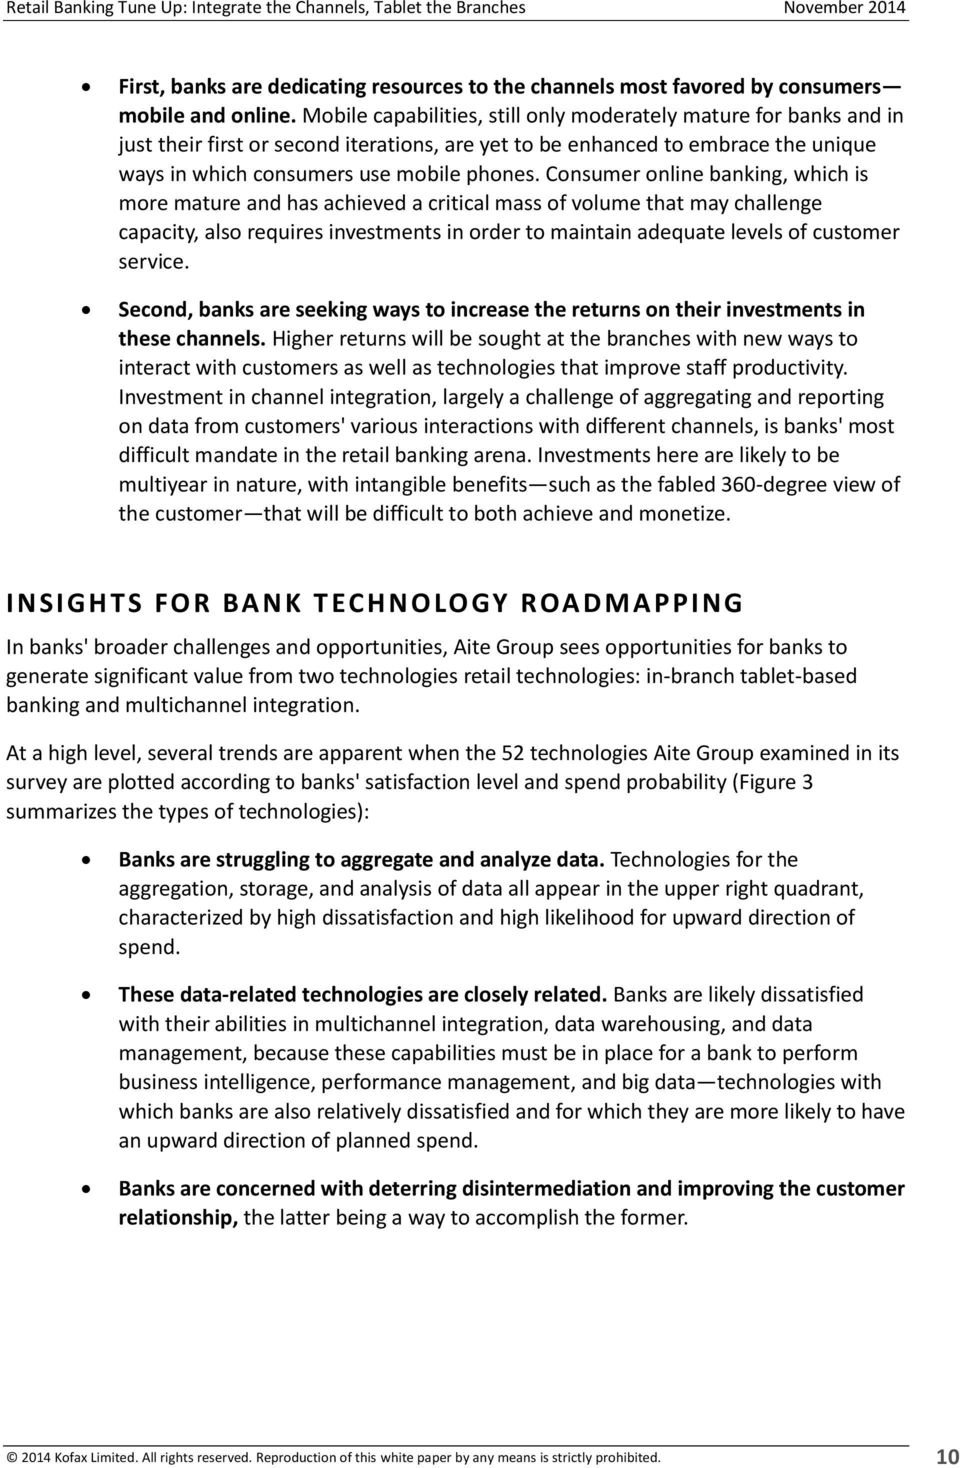 Retail Banking Tune Up: Integrate the Channels, Tablet the